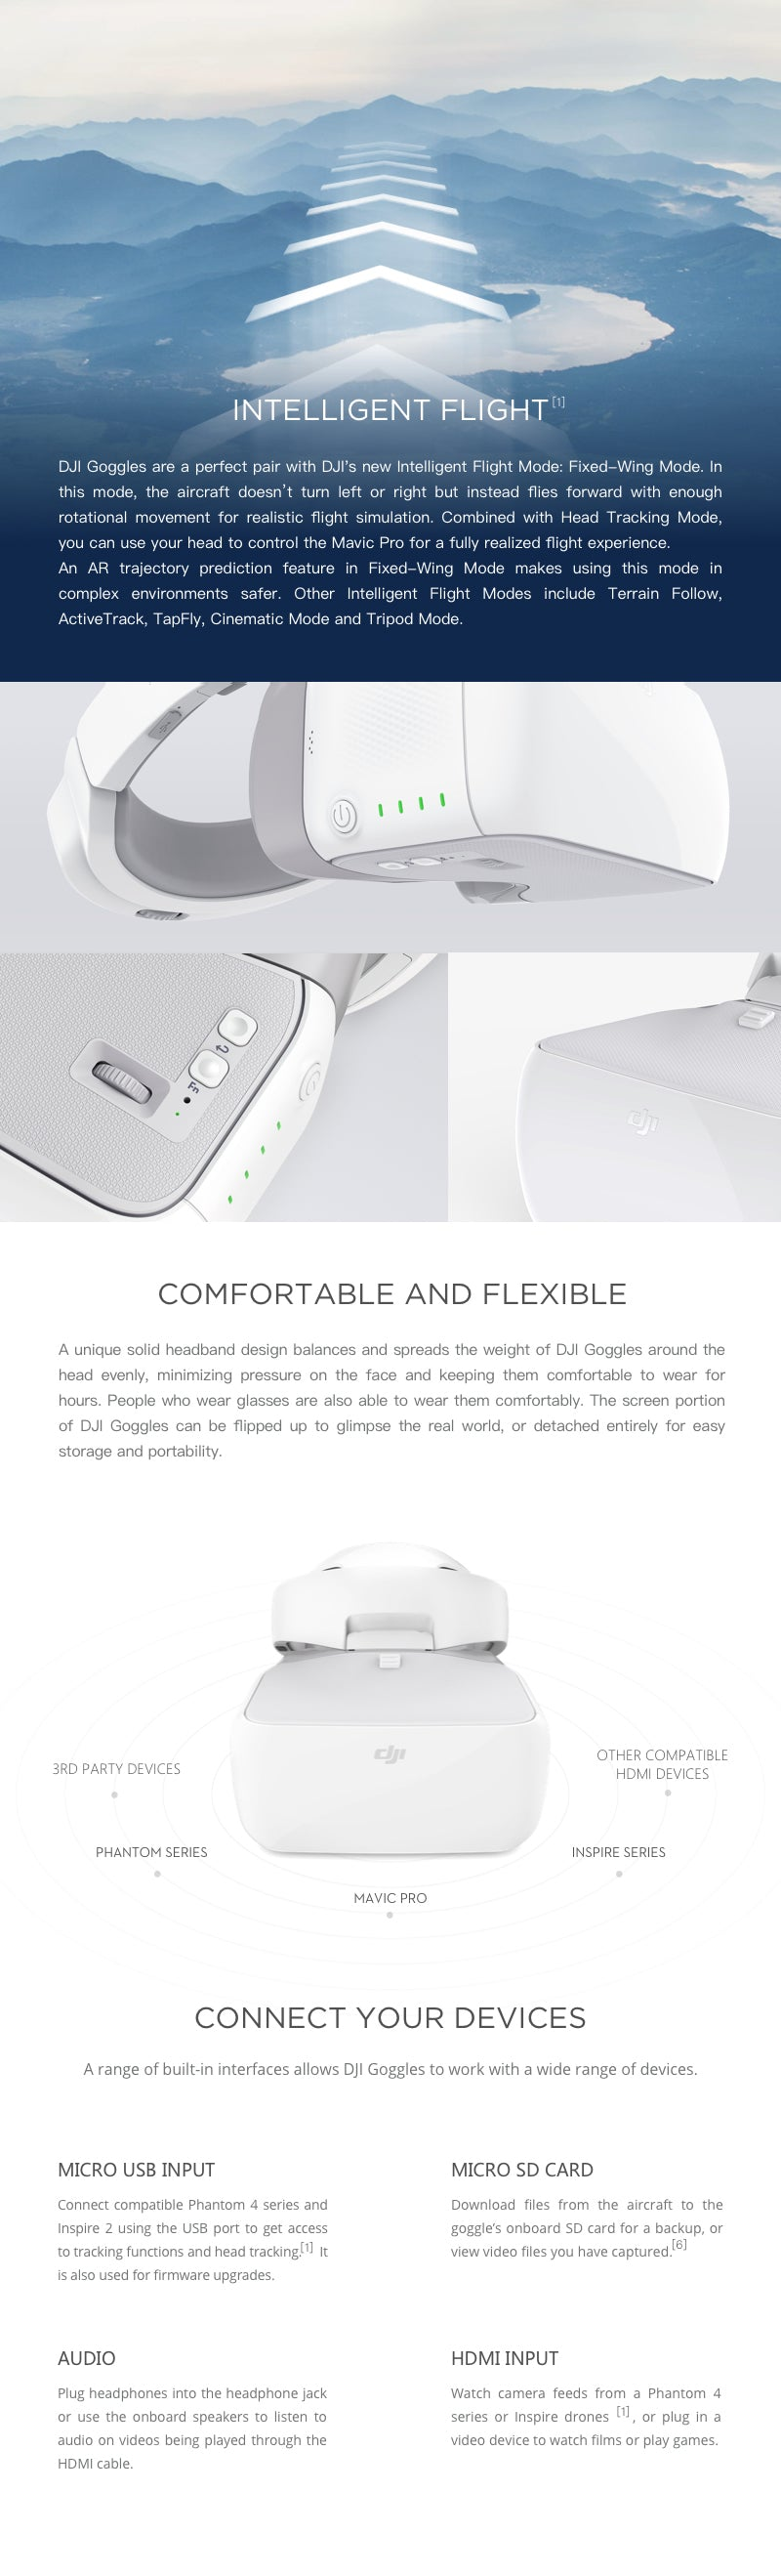 DJI Goggles Description 3